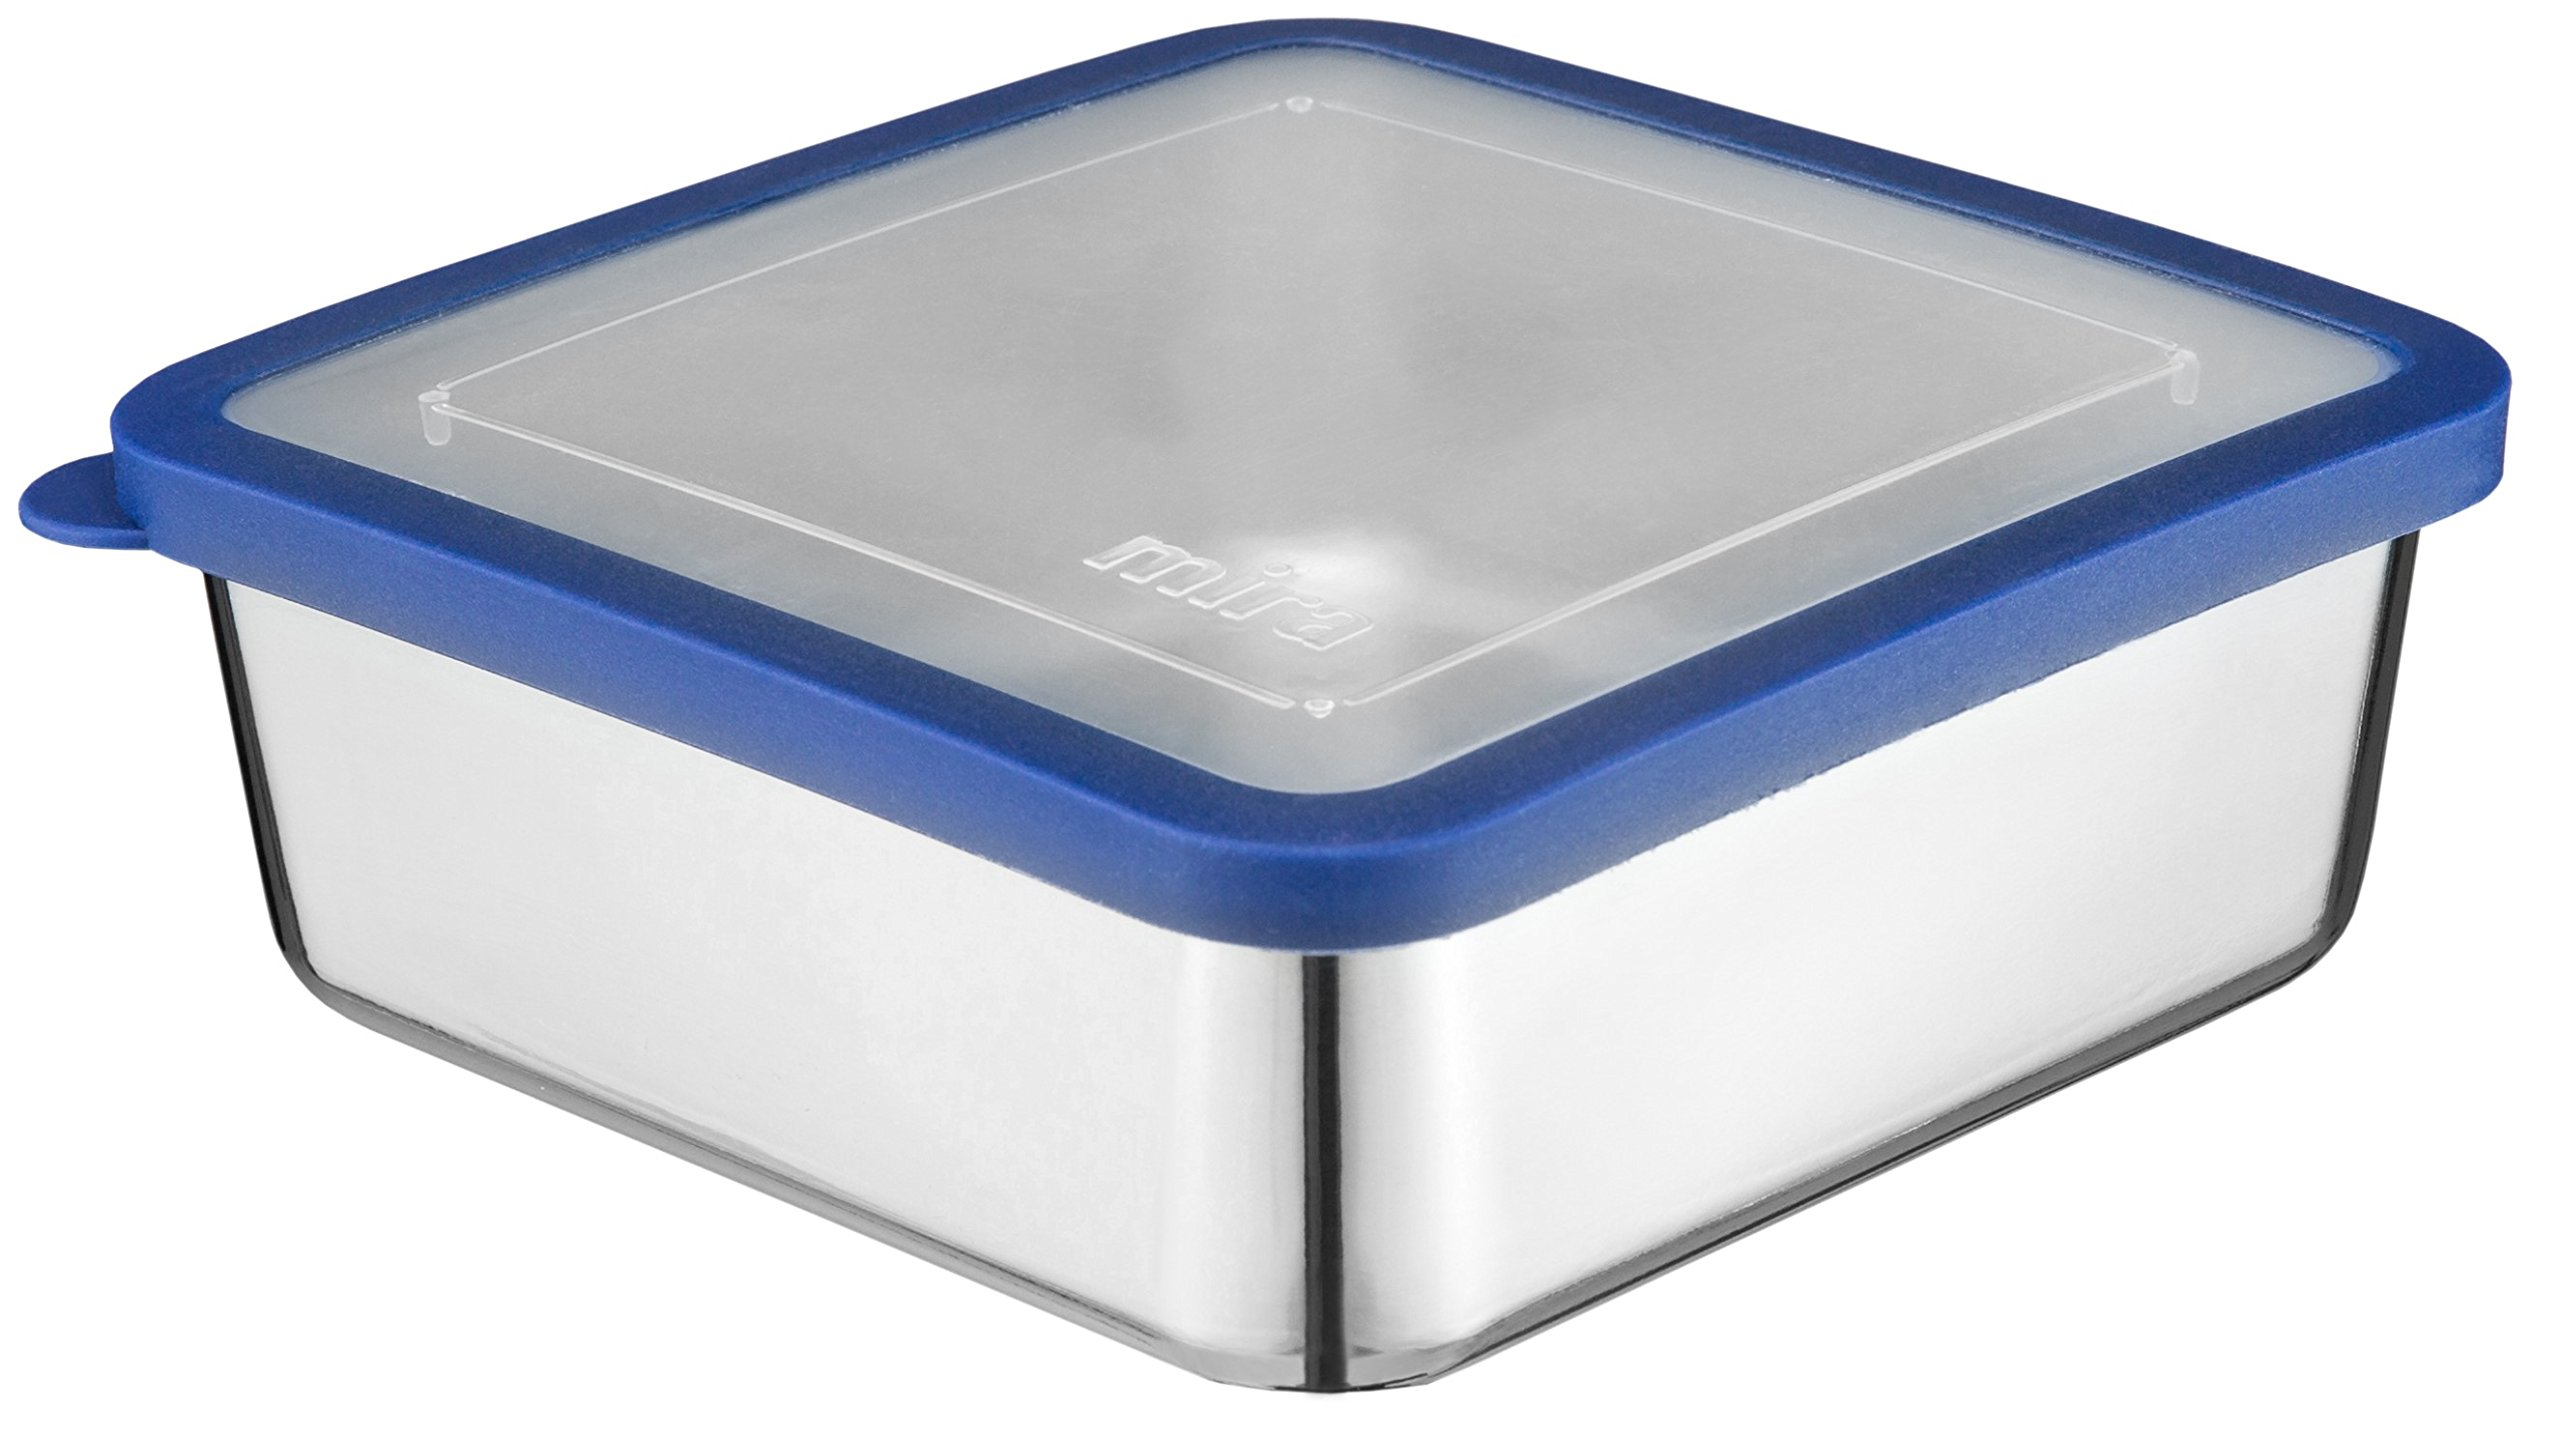 MIRA Stainless Steel Lunch Box Food Storage Container   BPA Free, Eco-Friendly, Reusable Sandwich Box & Snack Container   For Kids & Adults   6 x 6 in   Transparent Lid